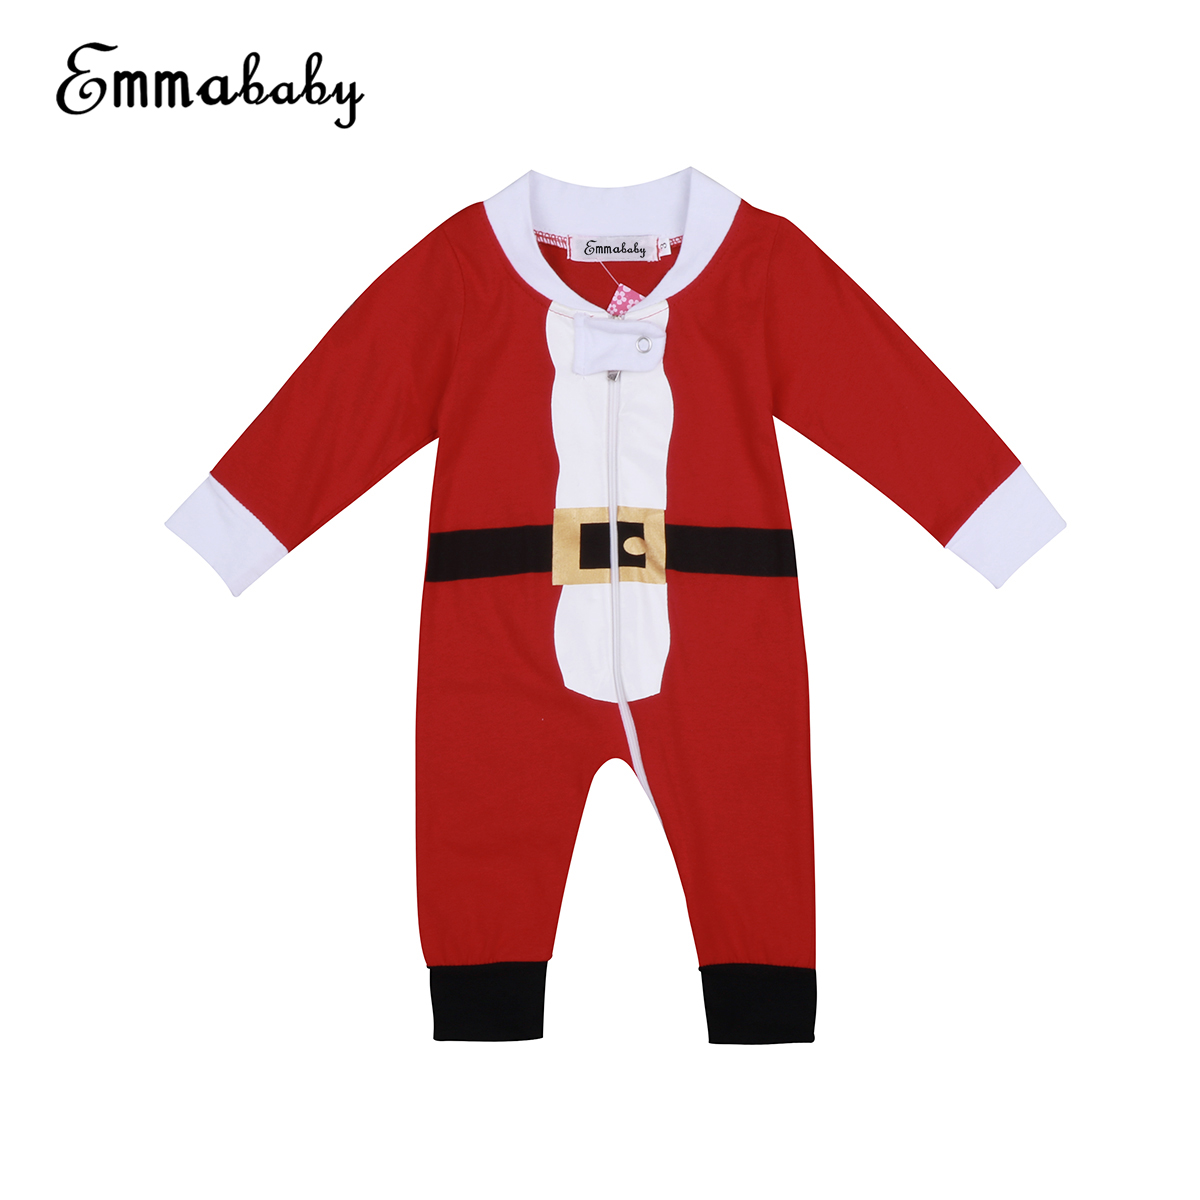 Emmababy XMAS Family Matching Long Sleeve Pajamas Set Santa Adult Kids Sleepwear Nightwear Pyjamas ...